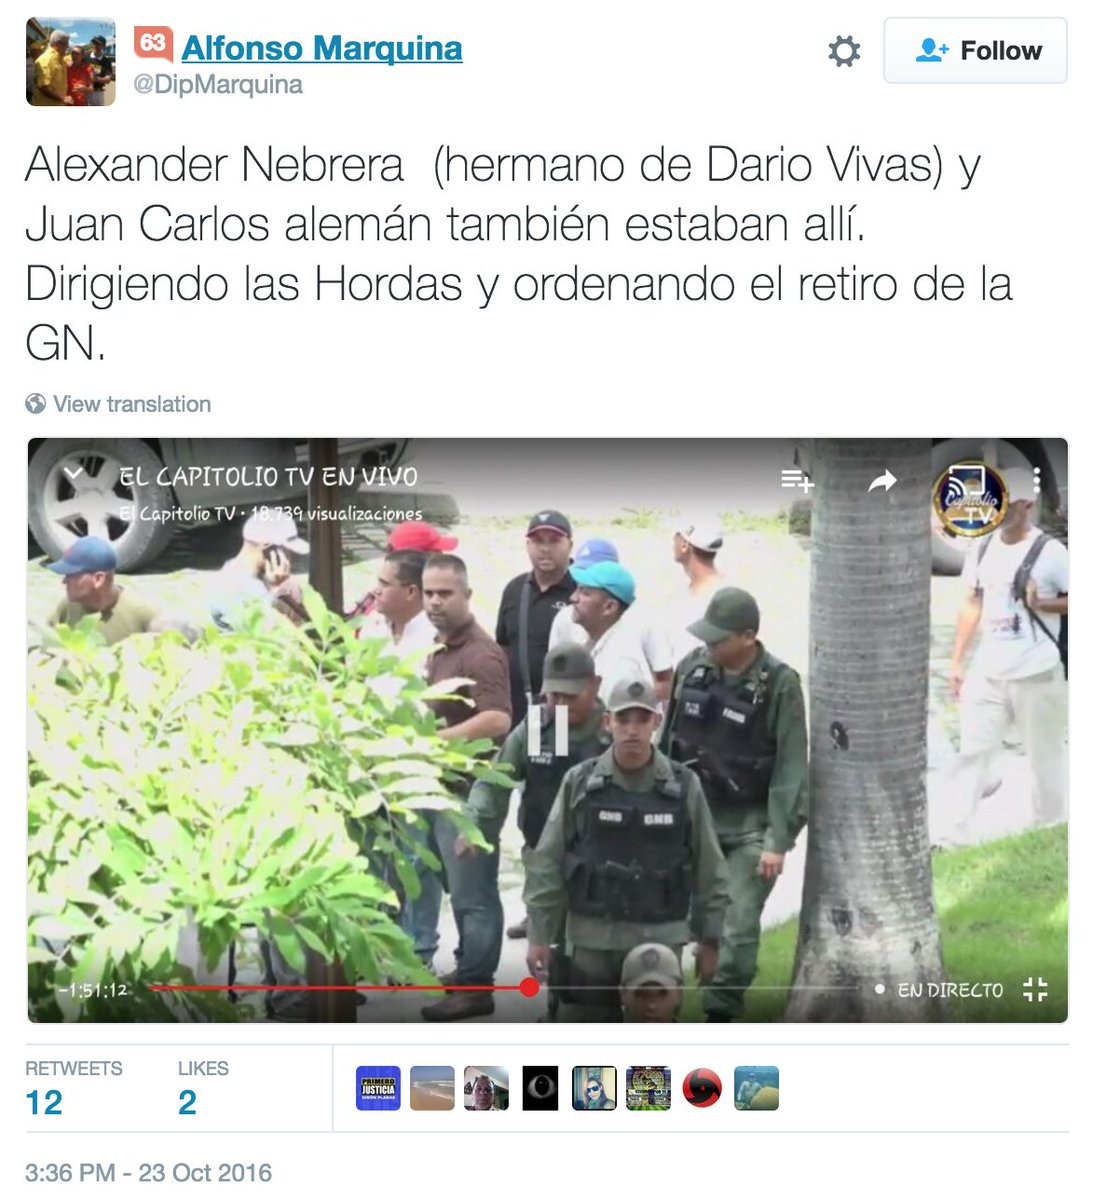 Marquina borró este tweet... https://t.co/XG3DTGi6h1